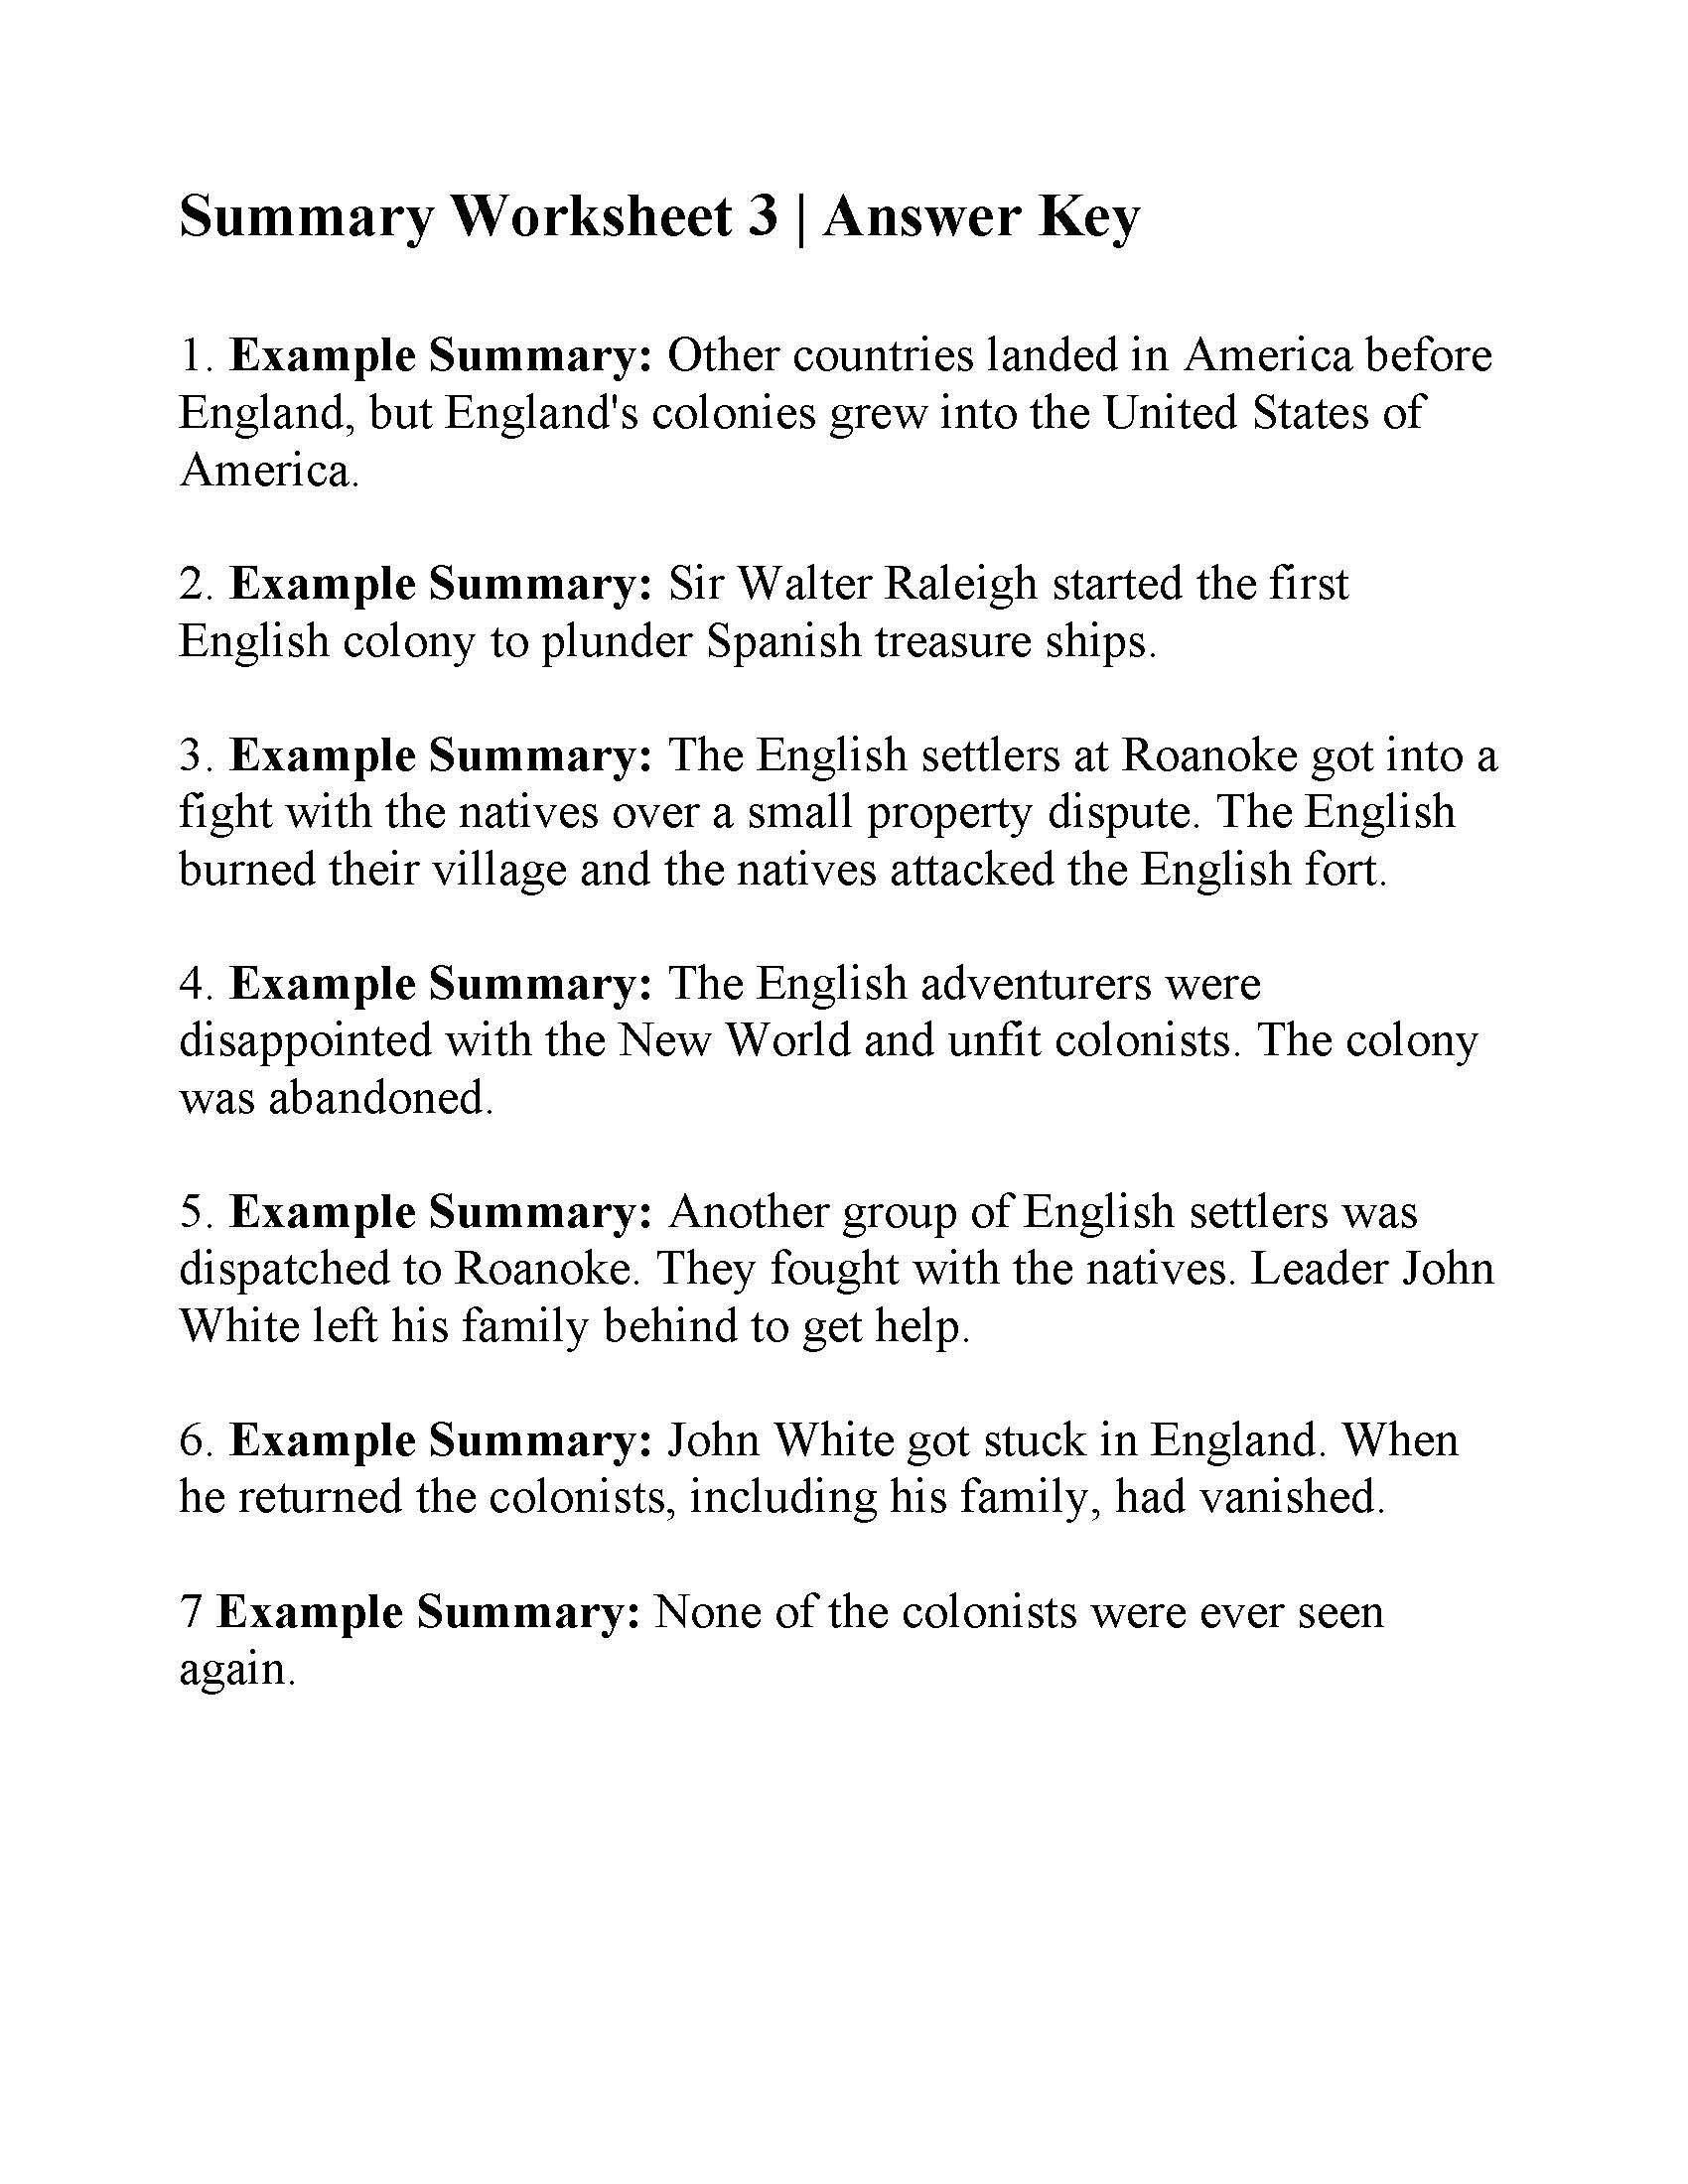 Summary Worksheets Middle School Summary Worksheet 3 Answers